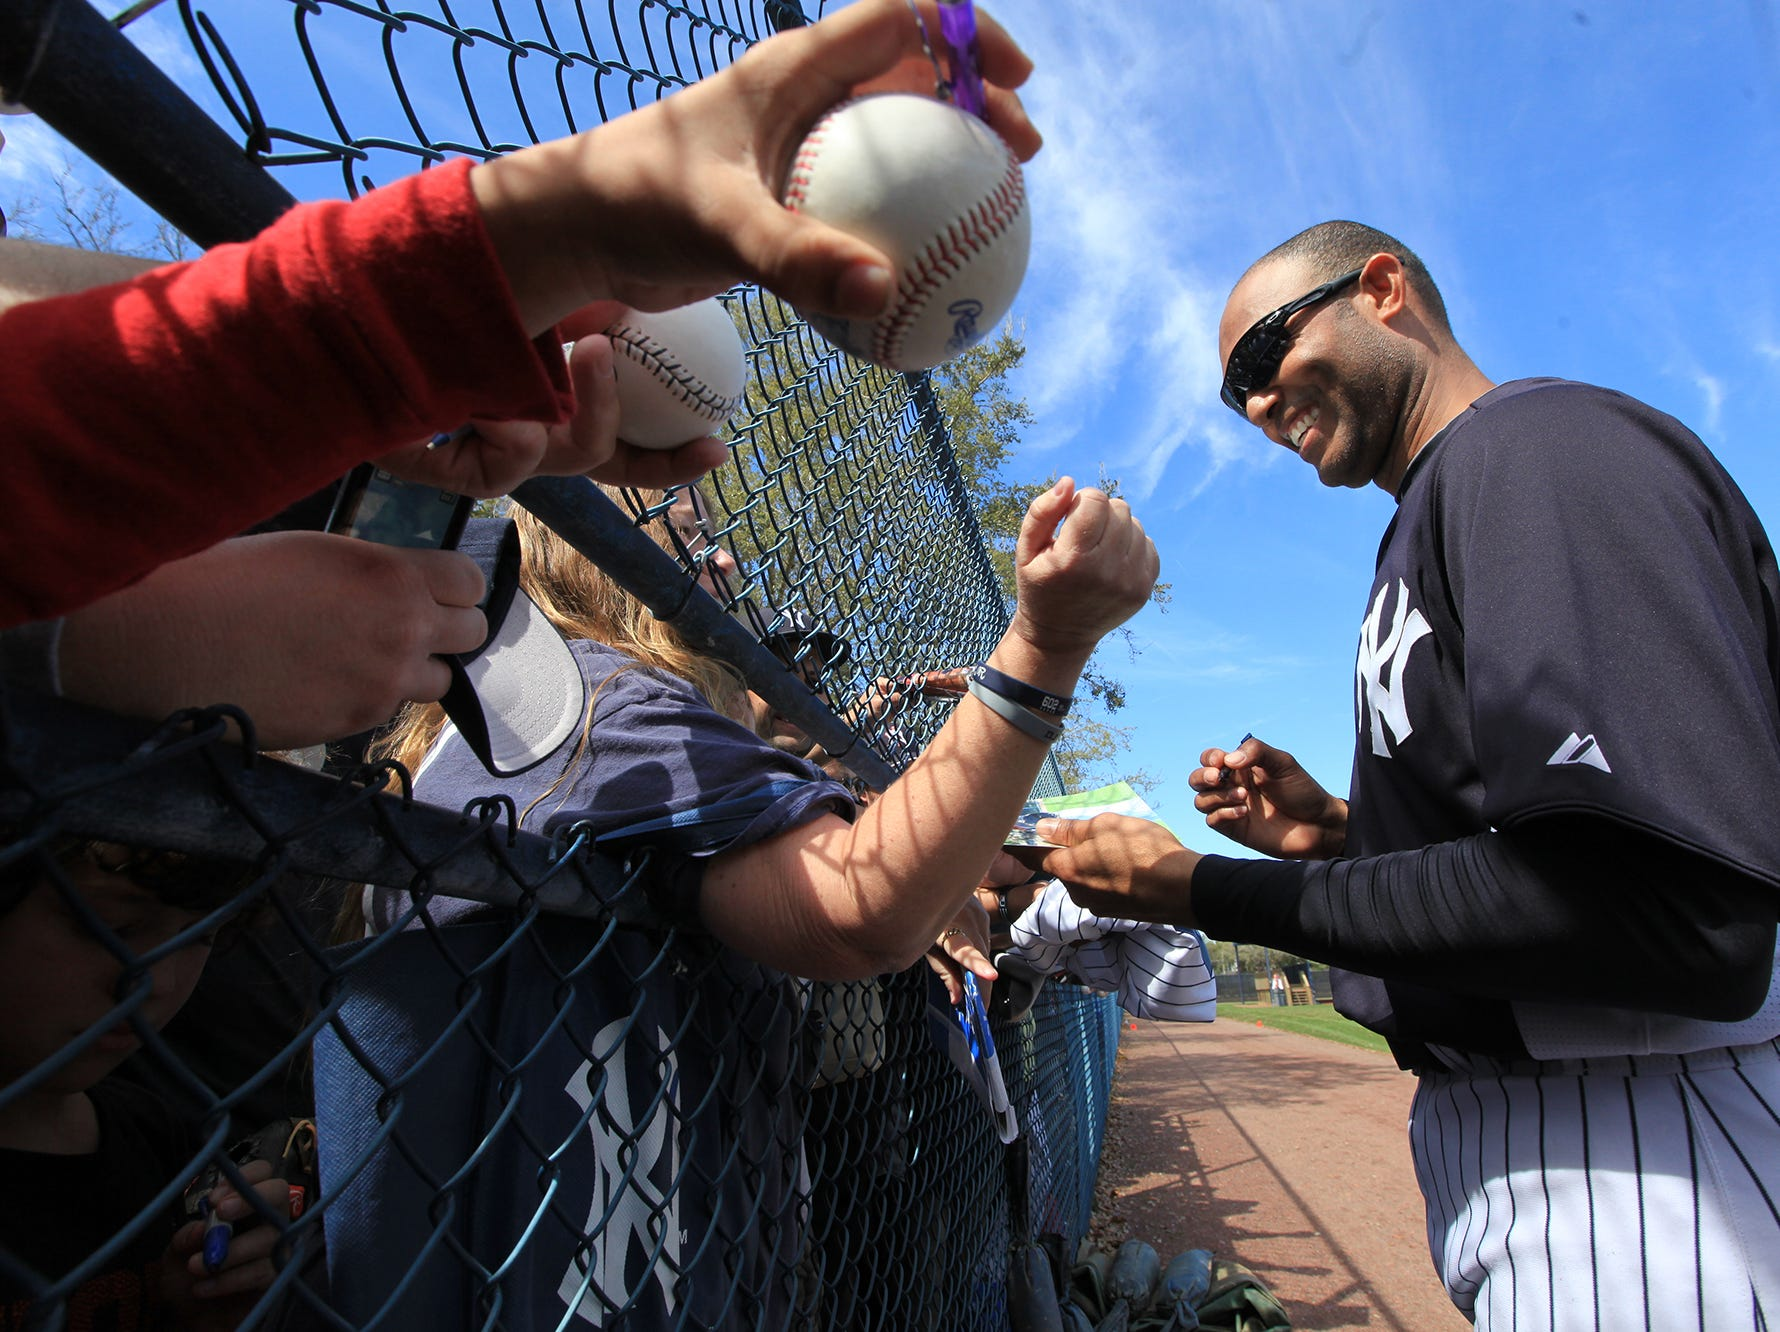 NY Yankees Spring Training 2012 -- First day workout for pitchers and catchers.  Yankee relief pitcher Mariano Rivera signs autographs for fans at the end of practice.